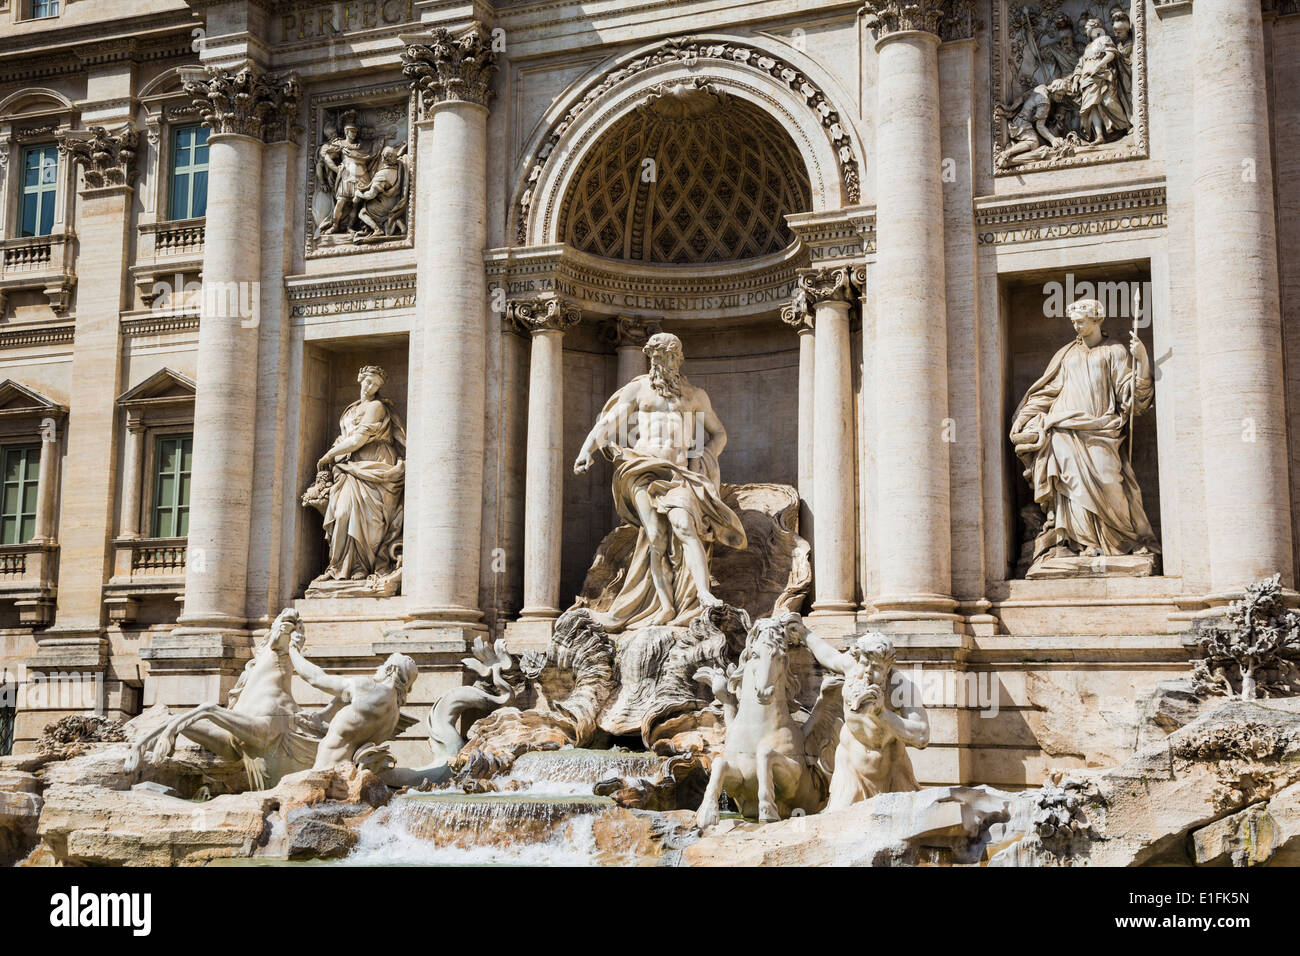 Rome, Italy. The 18th century Baroque Trevi Fountain designed by Nicola Salvi. The central figure represents the - Stock Image